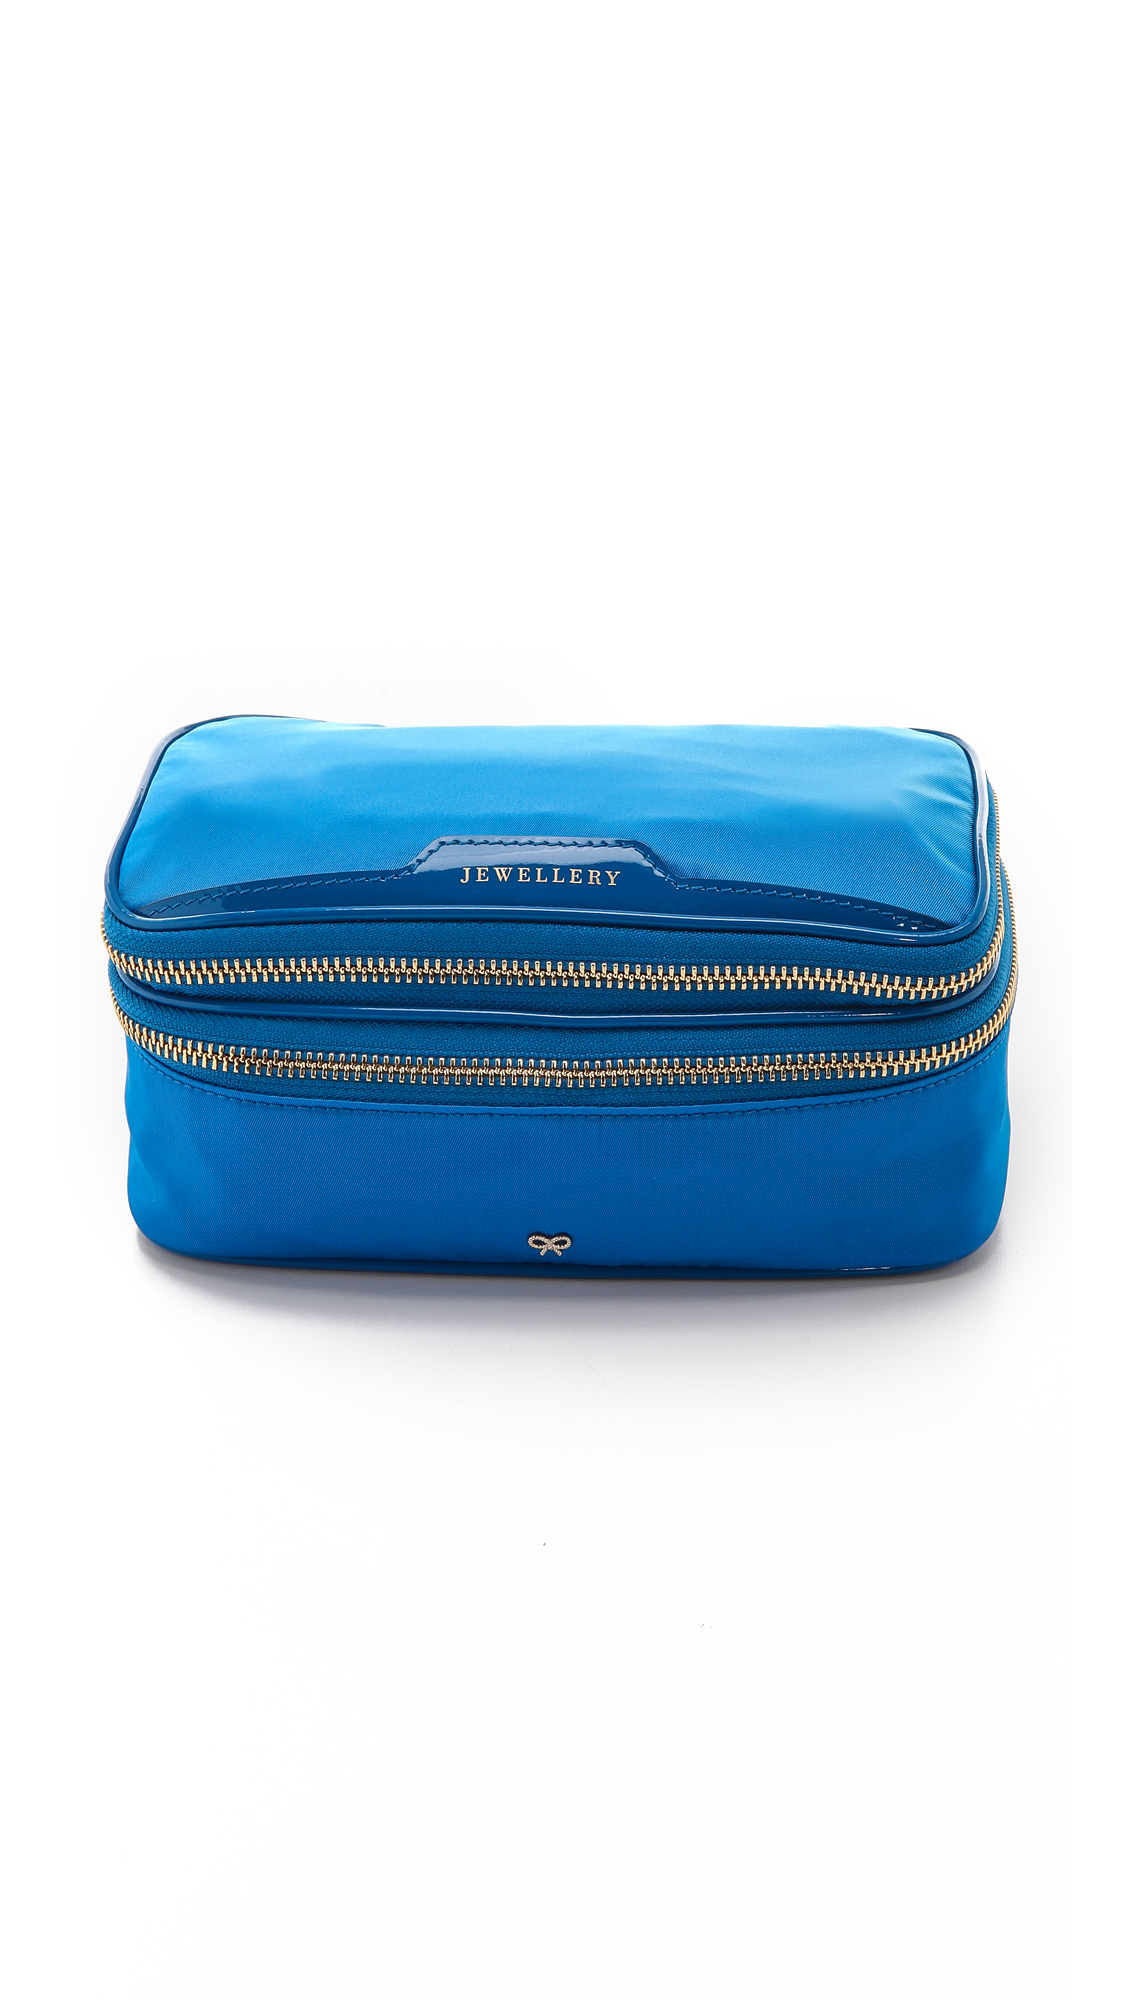 anya hindmarch jewelry pouch cobalt in blue lyst